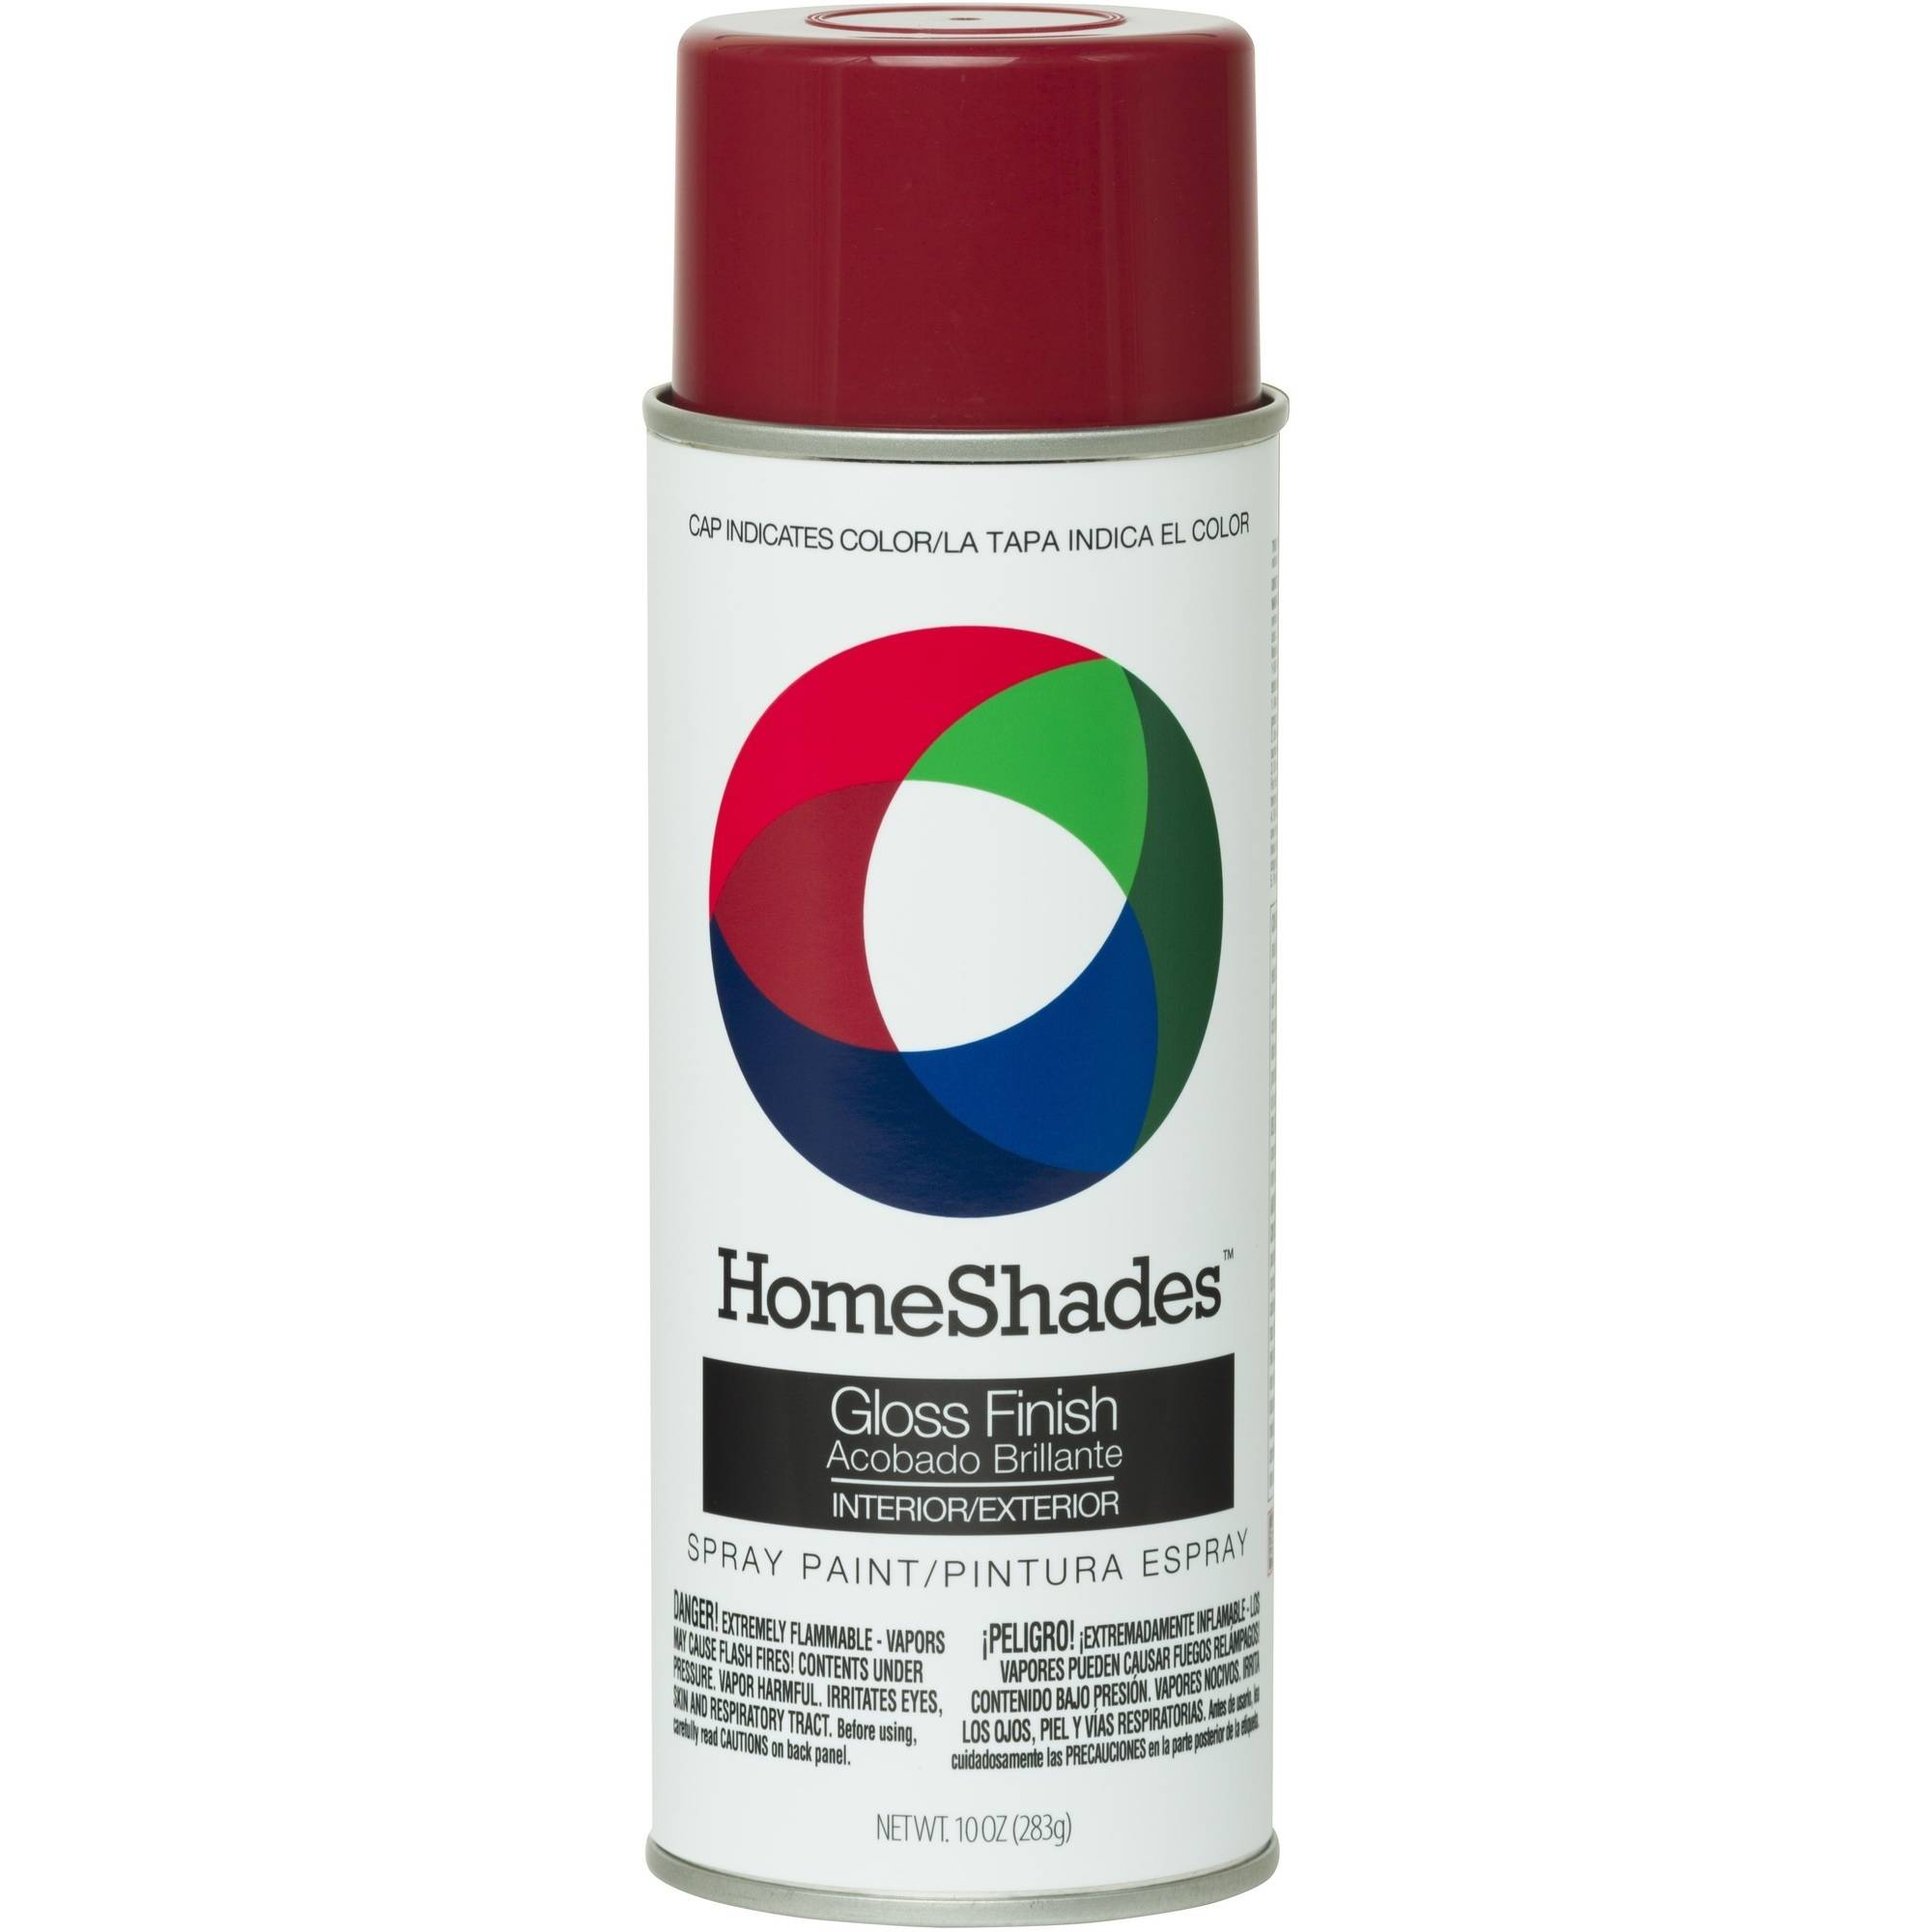 (2 pack) ColorPlace Gloss Spray Paint, Fire Red